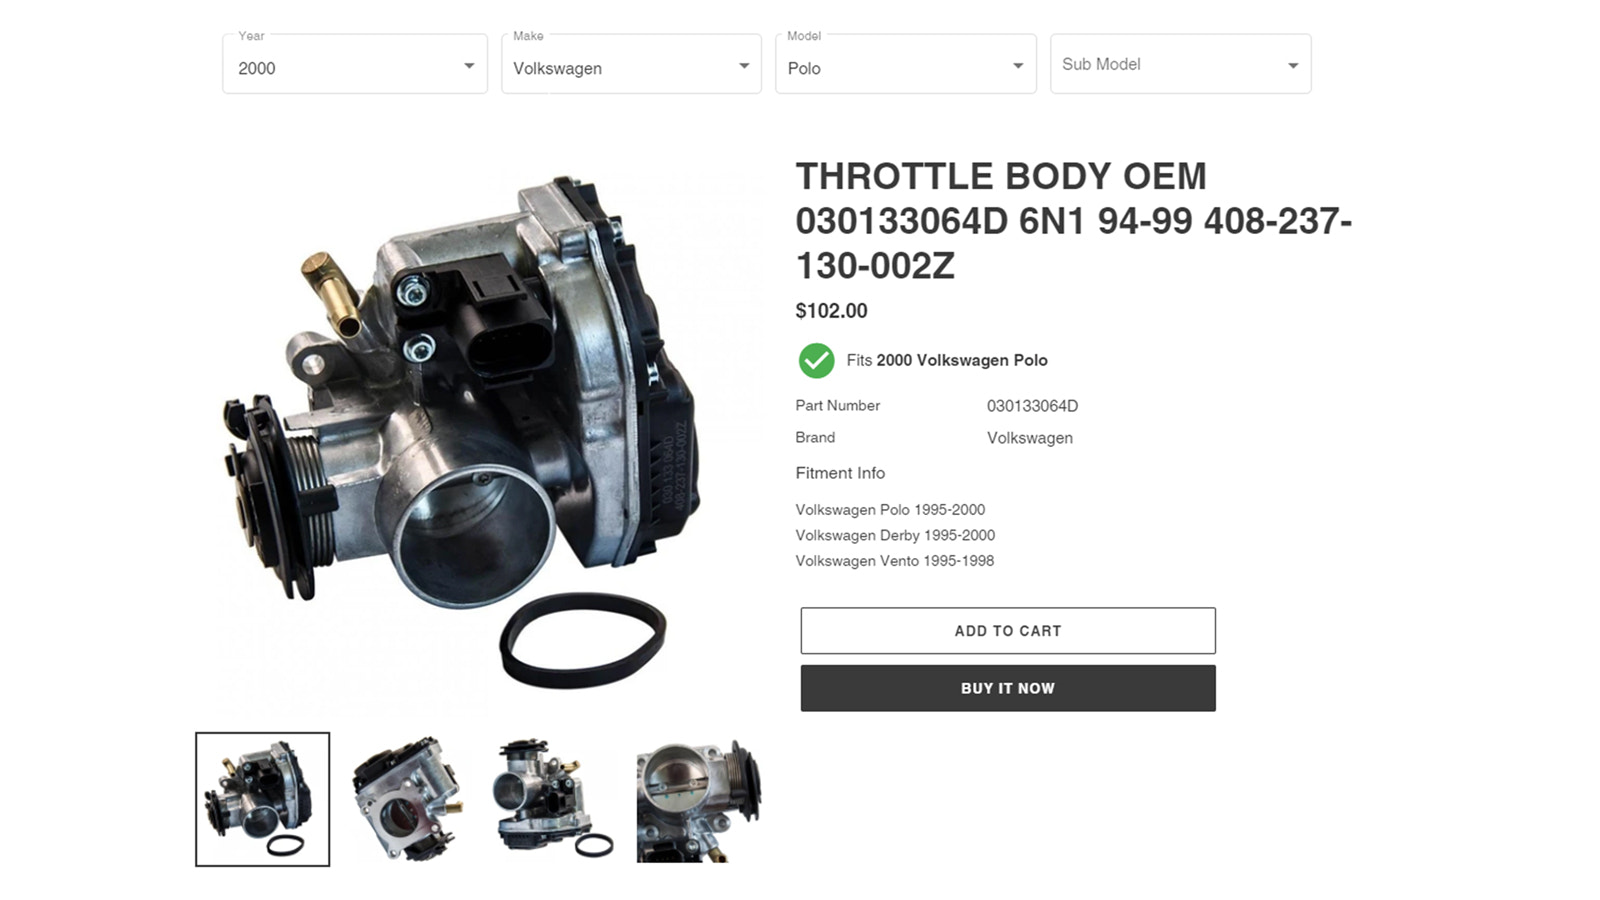 Vehicle Compatibility on product page